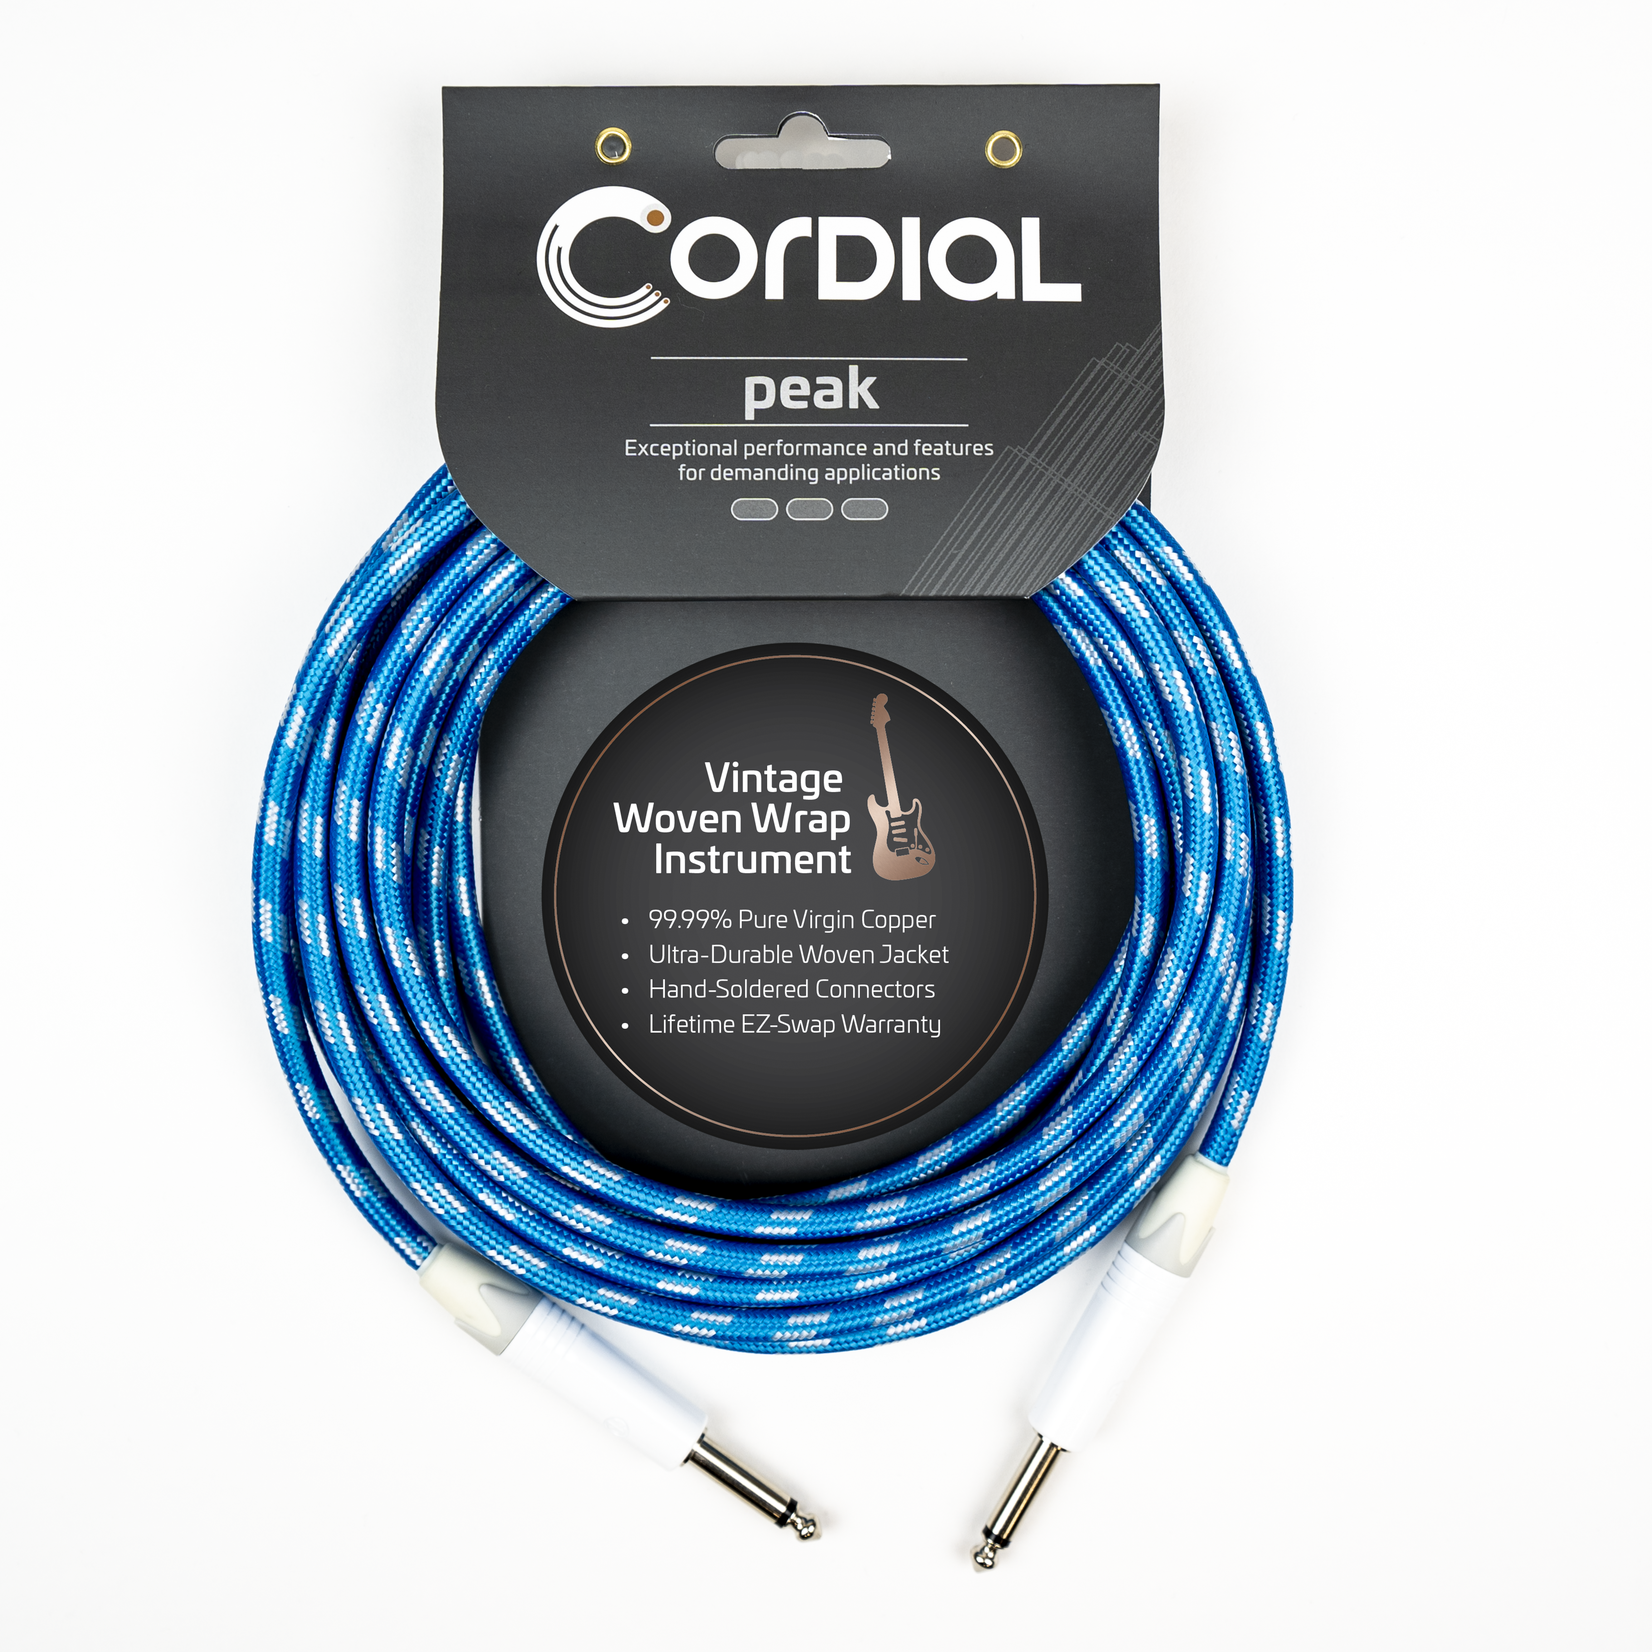 Cordial Cables Cordial 6m/20ft Premium Instrument Cable, White/Blue Sky Textile, Peak Series - 20-Foot Cable, 1/4'' to 1/4'' Phone Plugs, No-Fray Sleeve